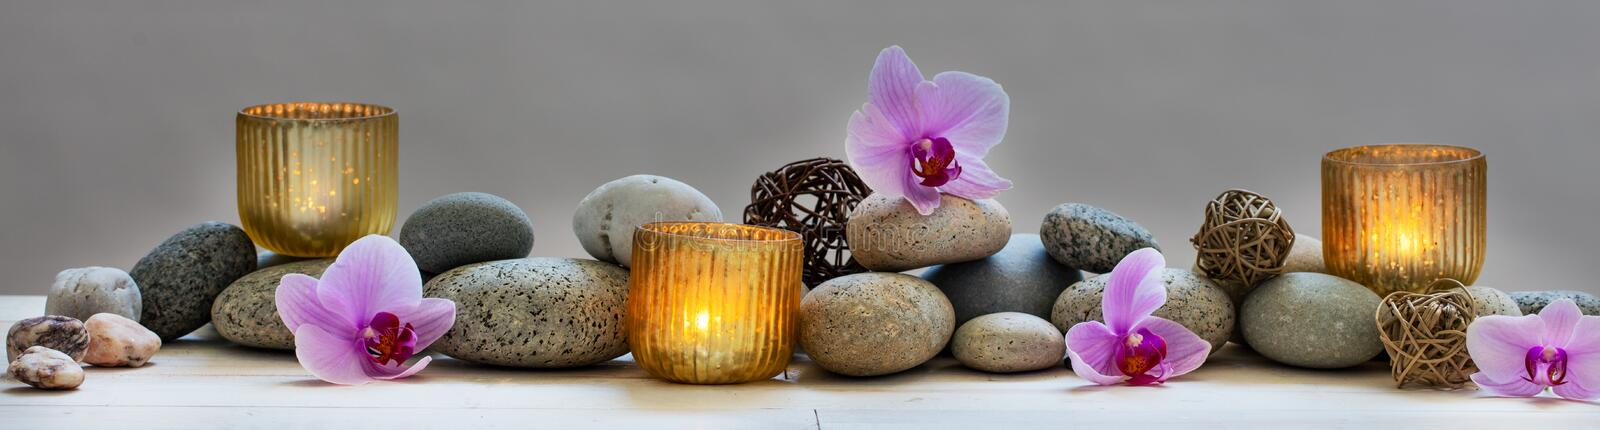 Concept of wellbeing with pebbles, orchids and candles, panoramic. Concept of spa, massage, yoga, wellbeing or feng shui with mineral pebbles, fresh orchid royalty free stock images